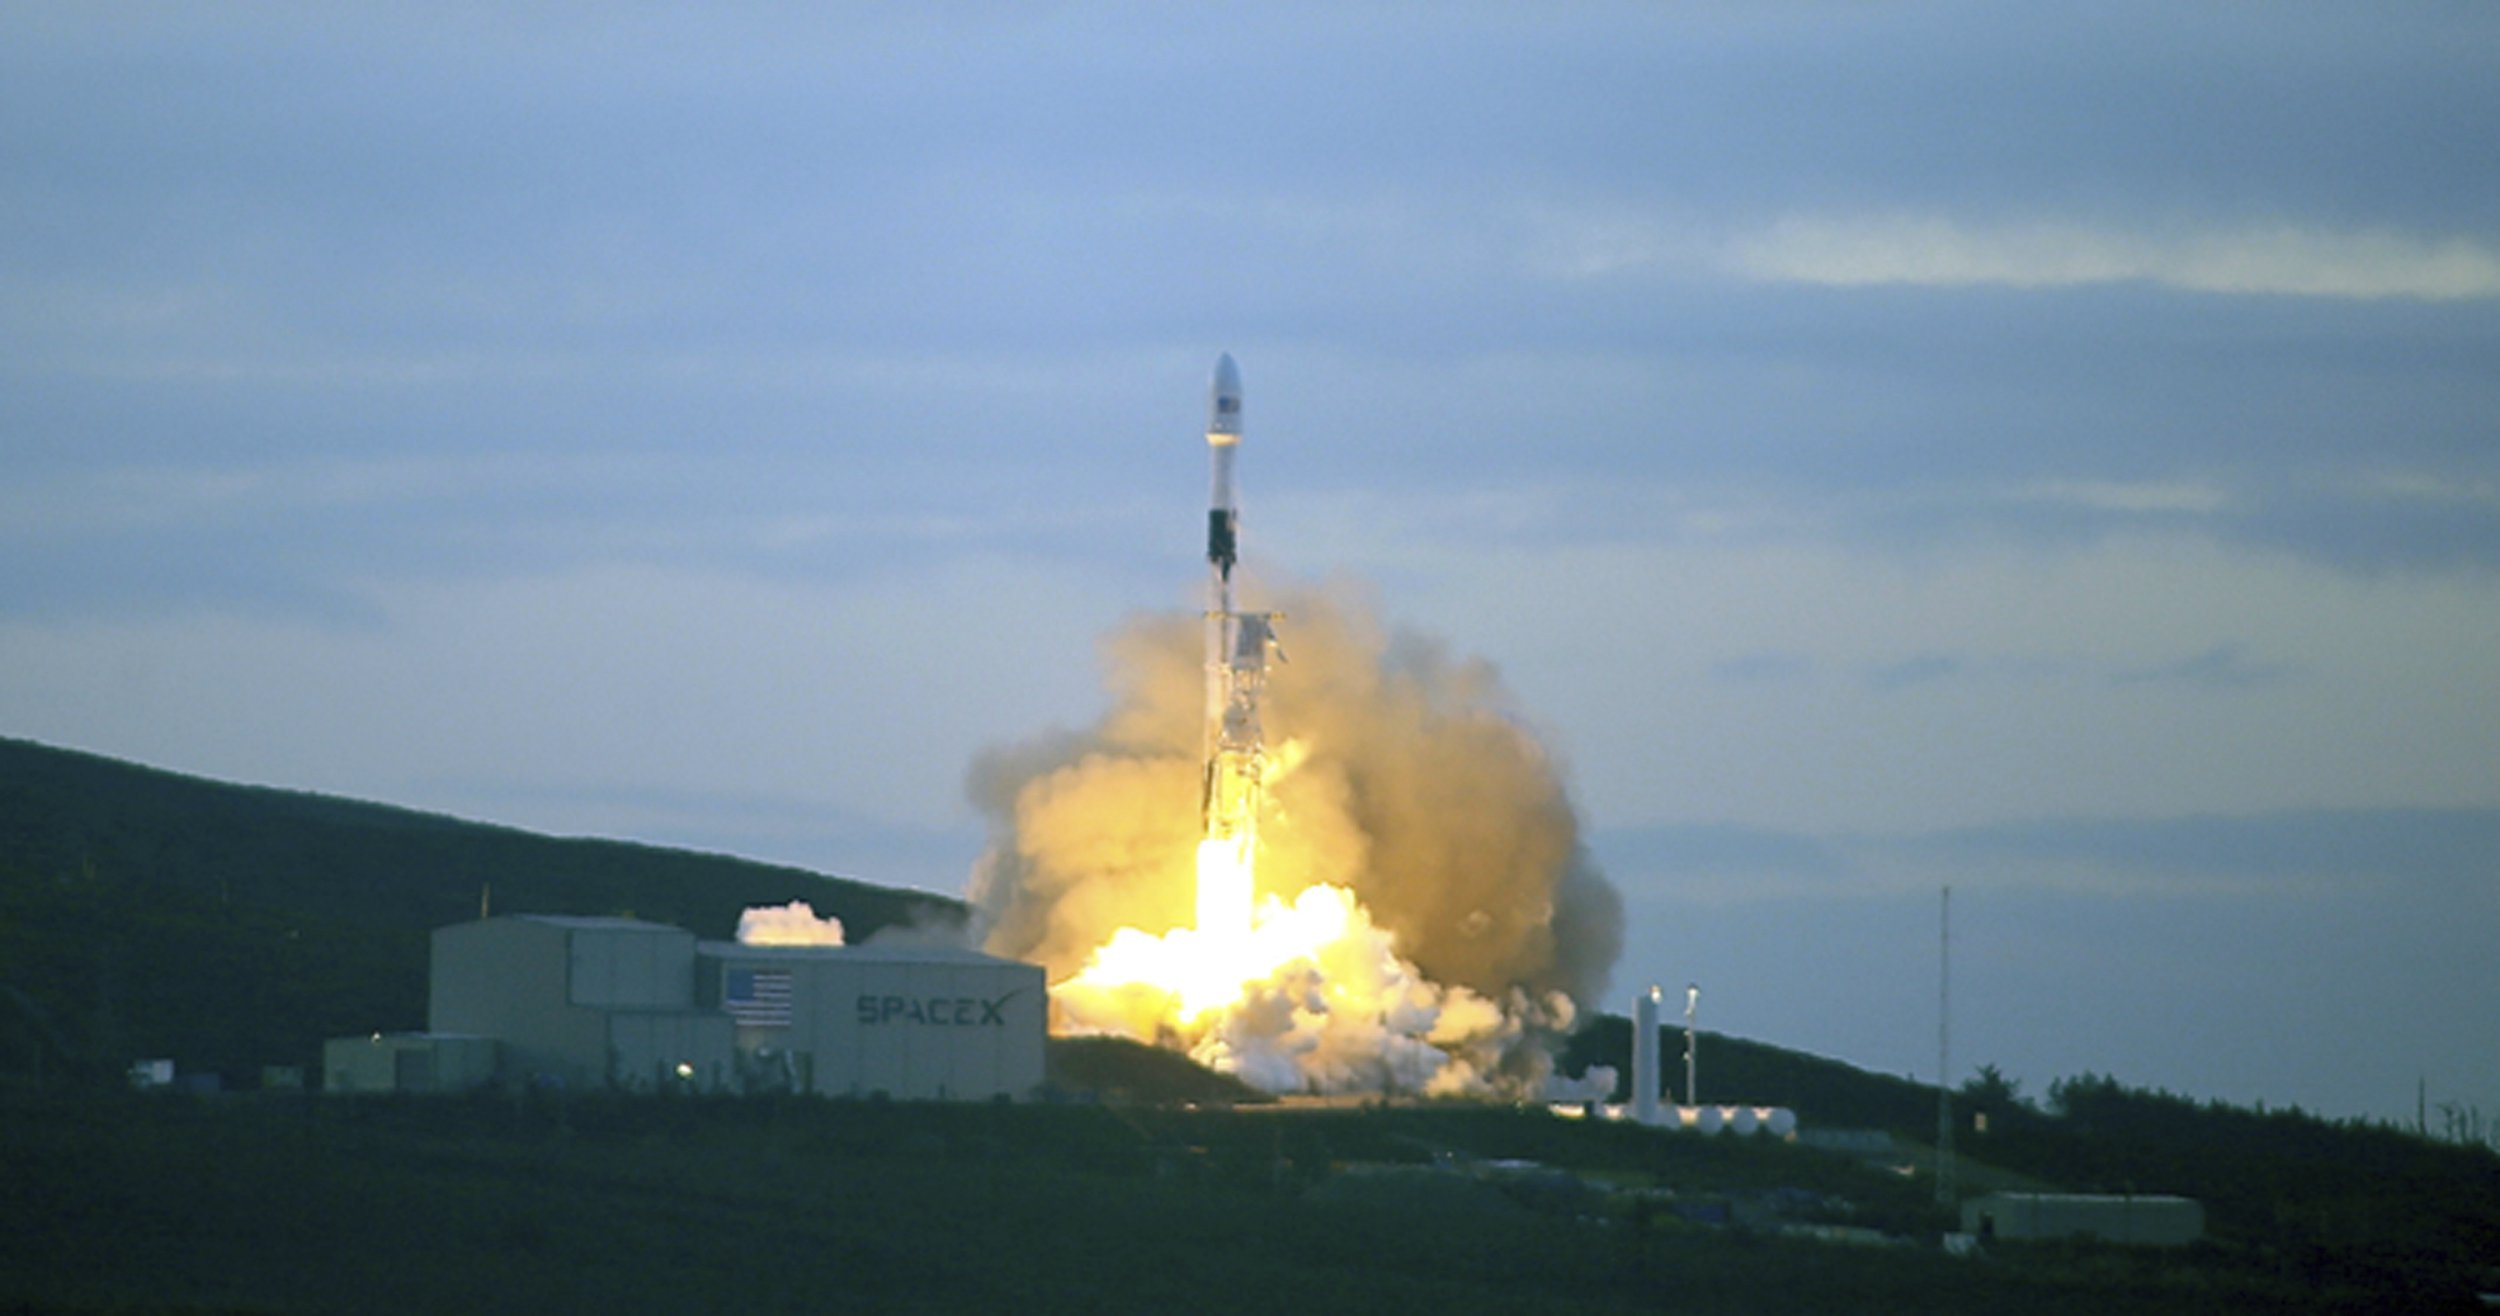 """A SpaceX Falcon 9 rocket blasts off from Vandenberg Air Force Base, Calif., delivering 10 satellites to low-Earth orbit on Friday, Jan. 11, 2019, completing a two-year campaign by Iridium Communications Inc. to replace its original fleet with a new generation of mobile communication technology and added global aircraft tracking capability. The Falcon 9 rocket blasted off from Vandenberg at 7:31 a.m. and arced over the Pacific west of Los Angeles. The previously used first stage was recovered again with a bullseye landing on a """"droneship"""" in the ocean while the upper stage continued on to orbit. (AP Photo/Matt Hartman)"""